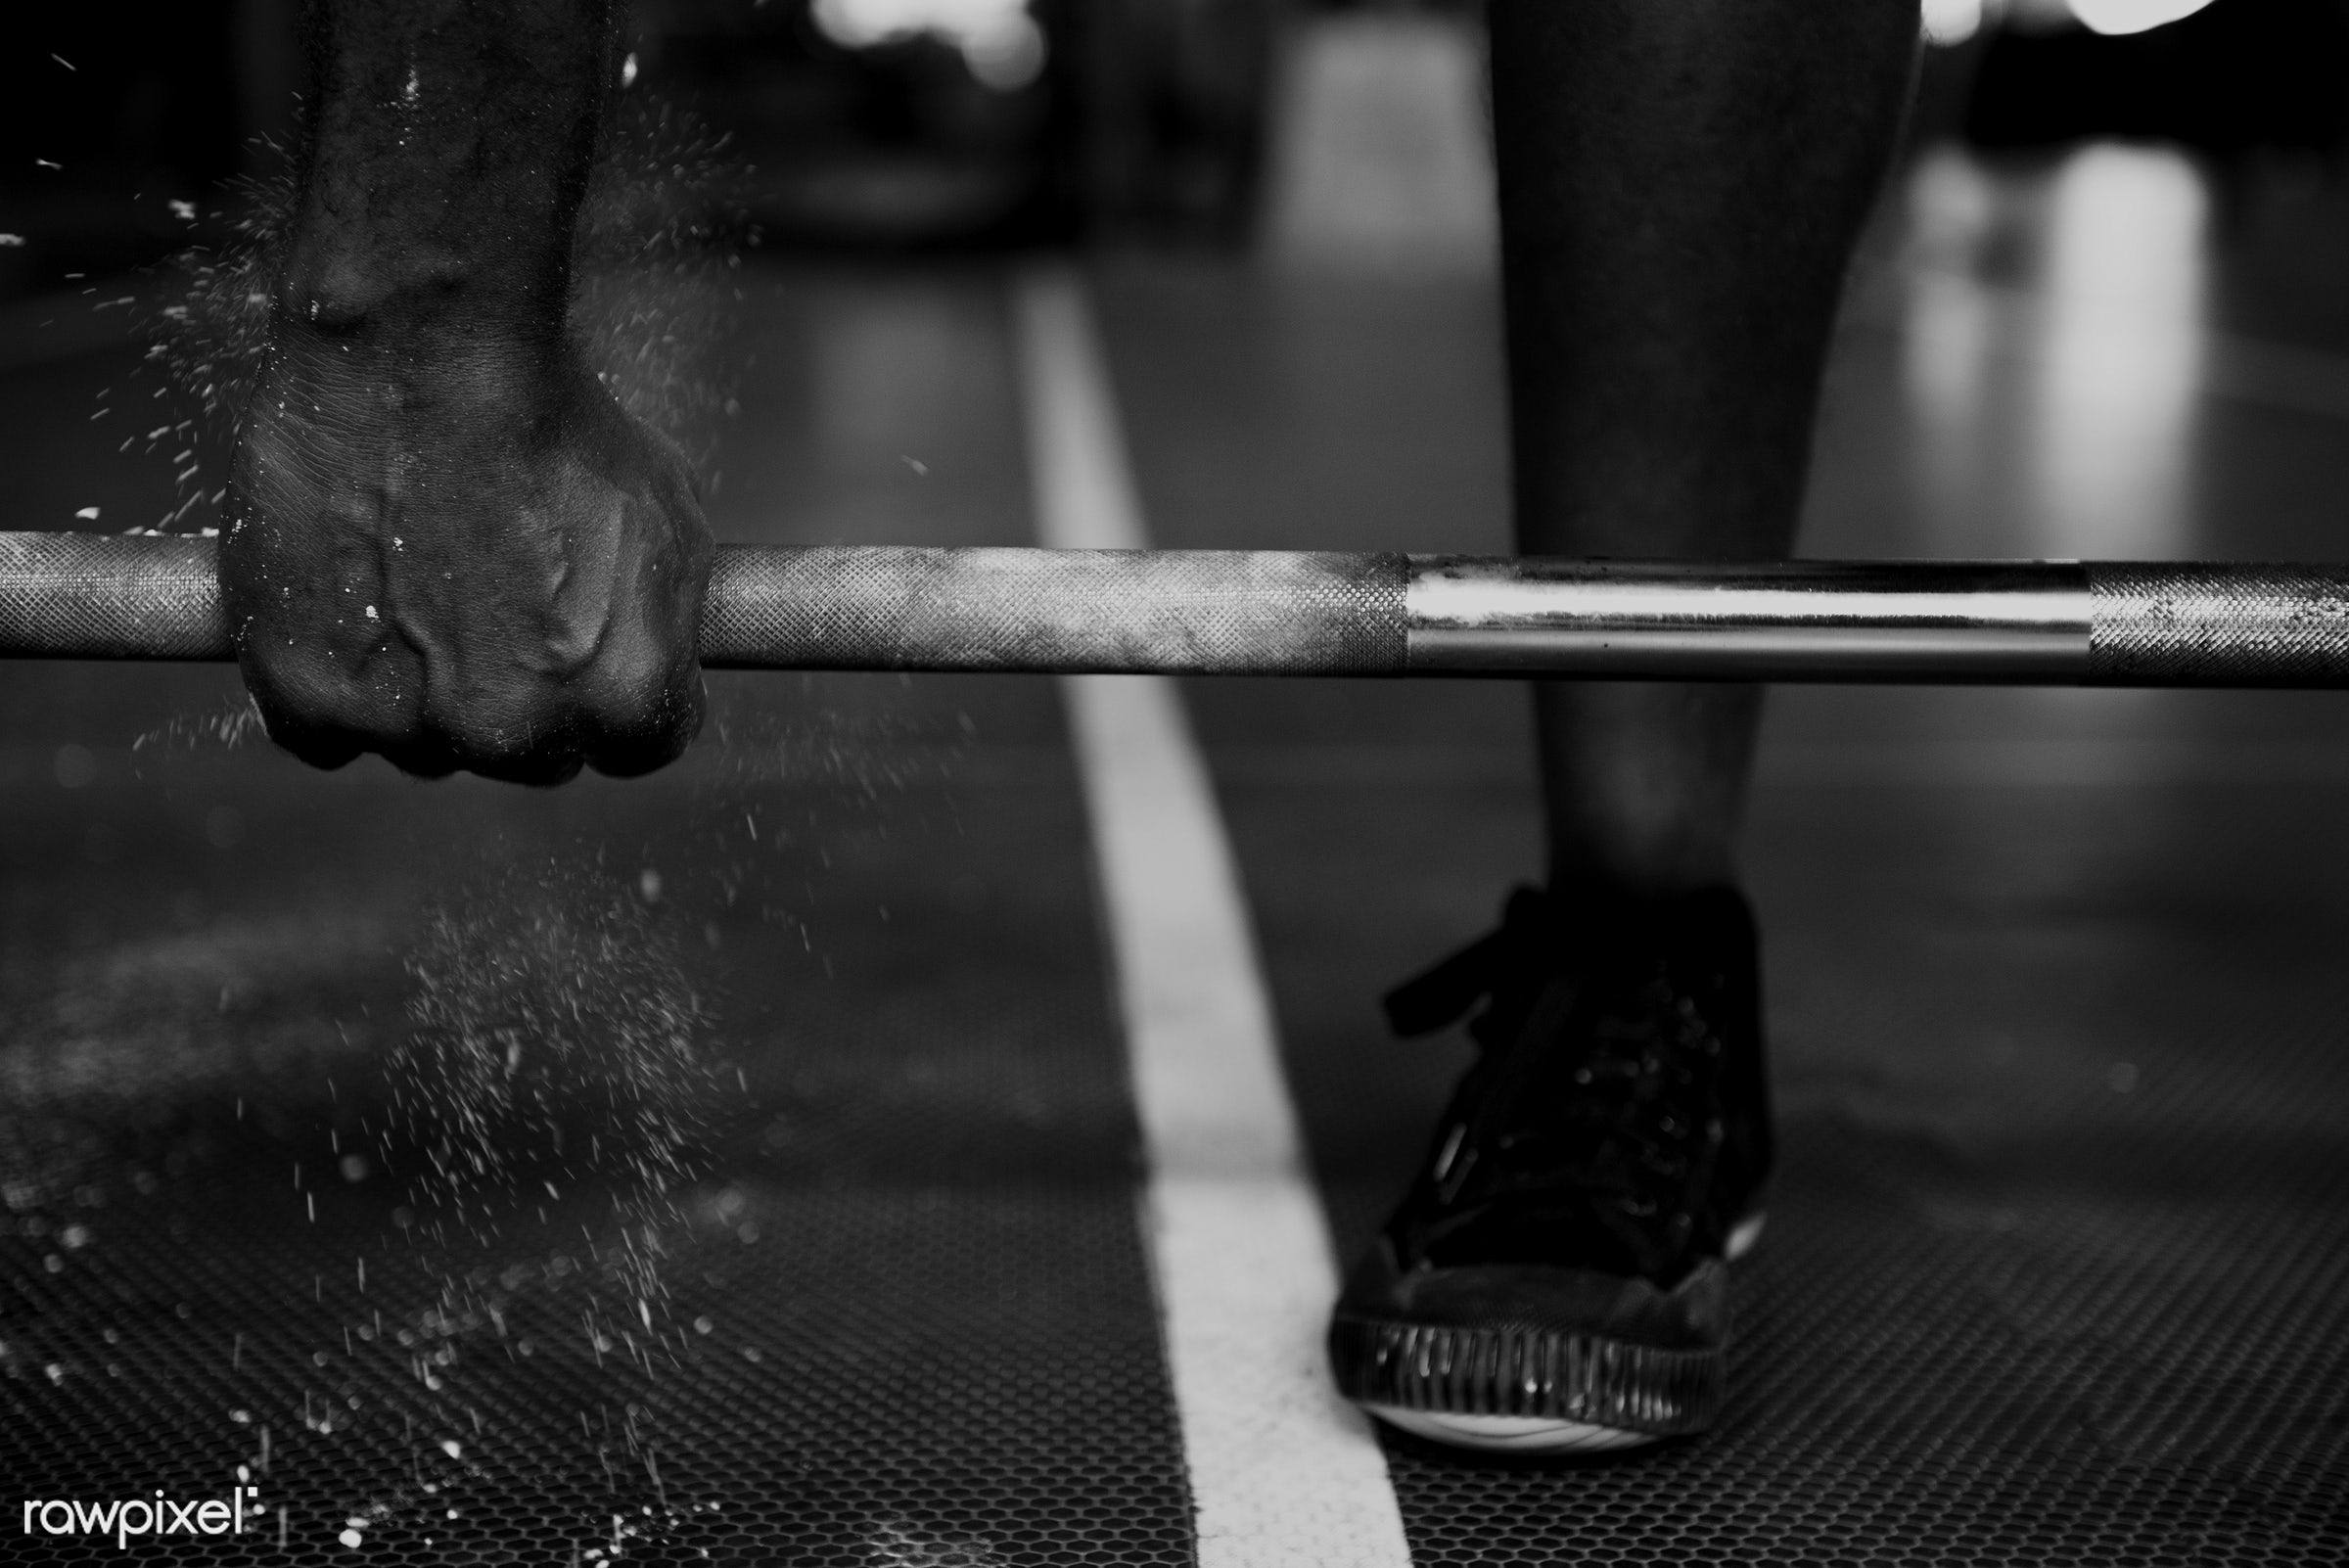 At the gym - activity, african descent, athlete, athletic, barbell, courage, fit, fitness, floor, footwear, grayscale, gym,...